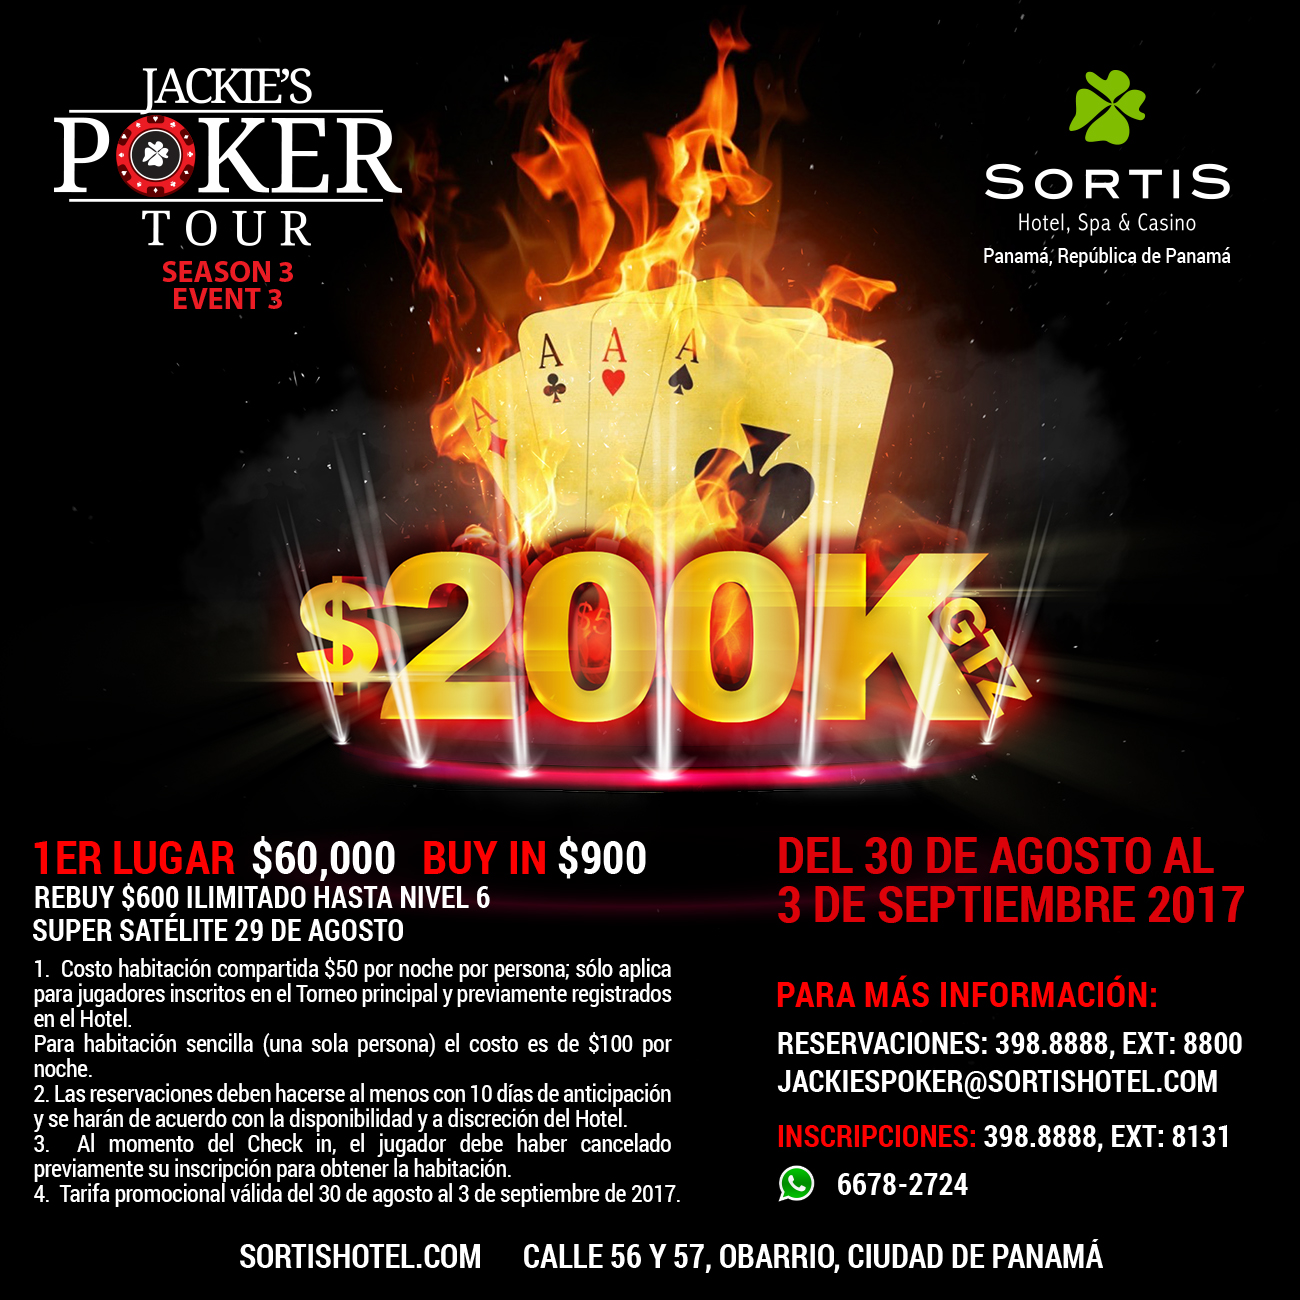 Jackies Poker Tour Season 3 - Event 3